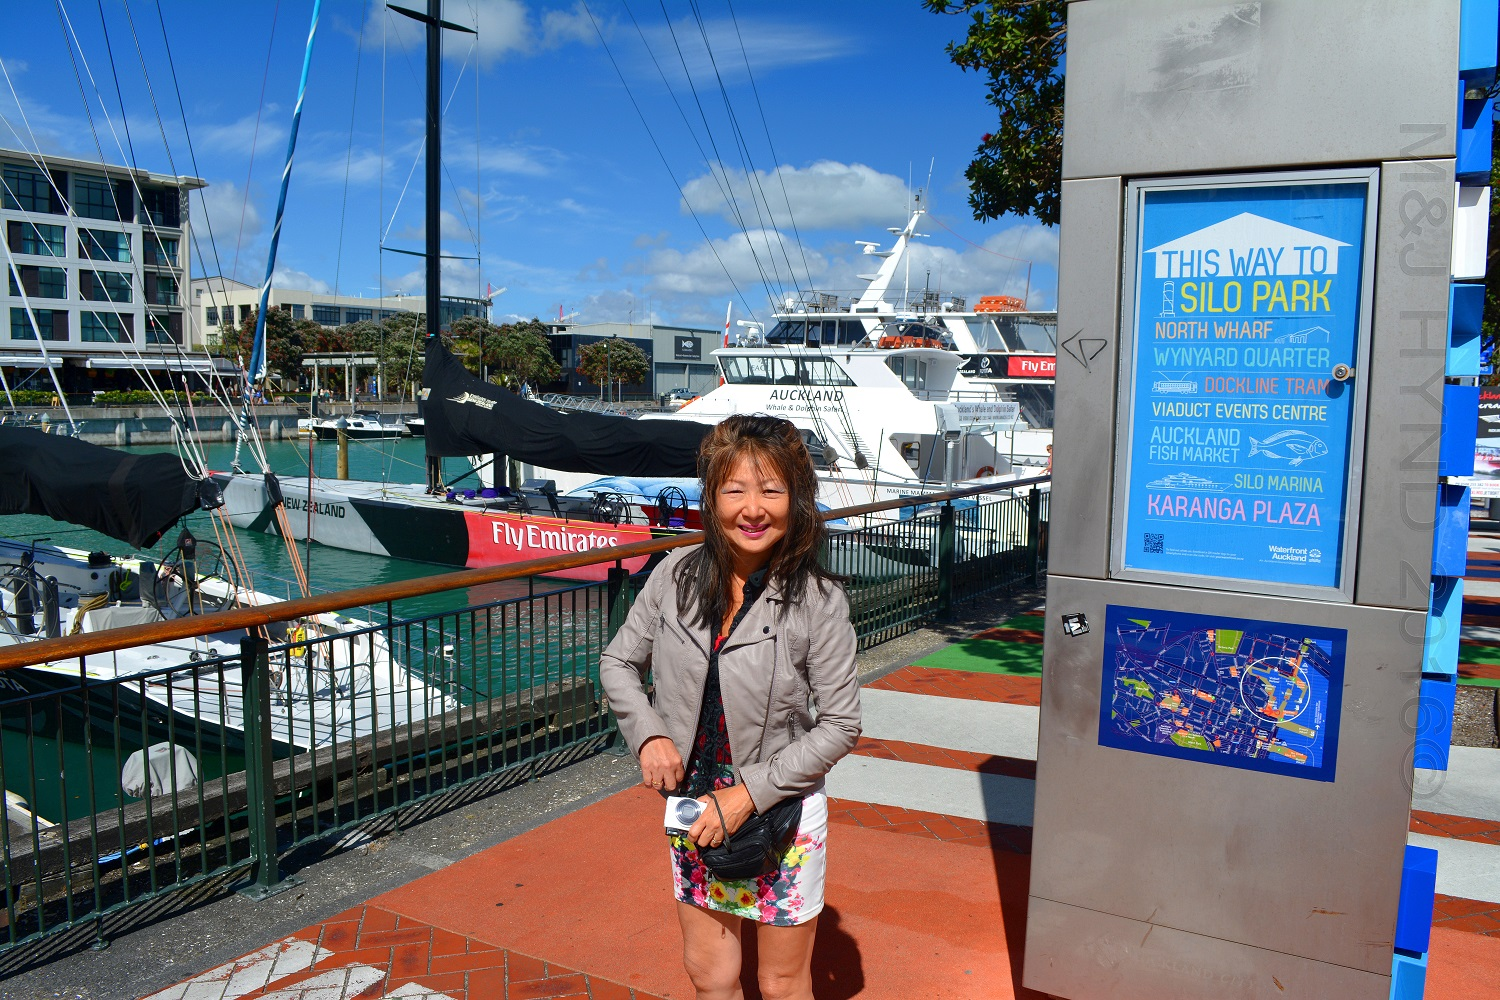 Viaduct Harbour, Americas Cup boats, Auckland, NZ